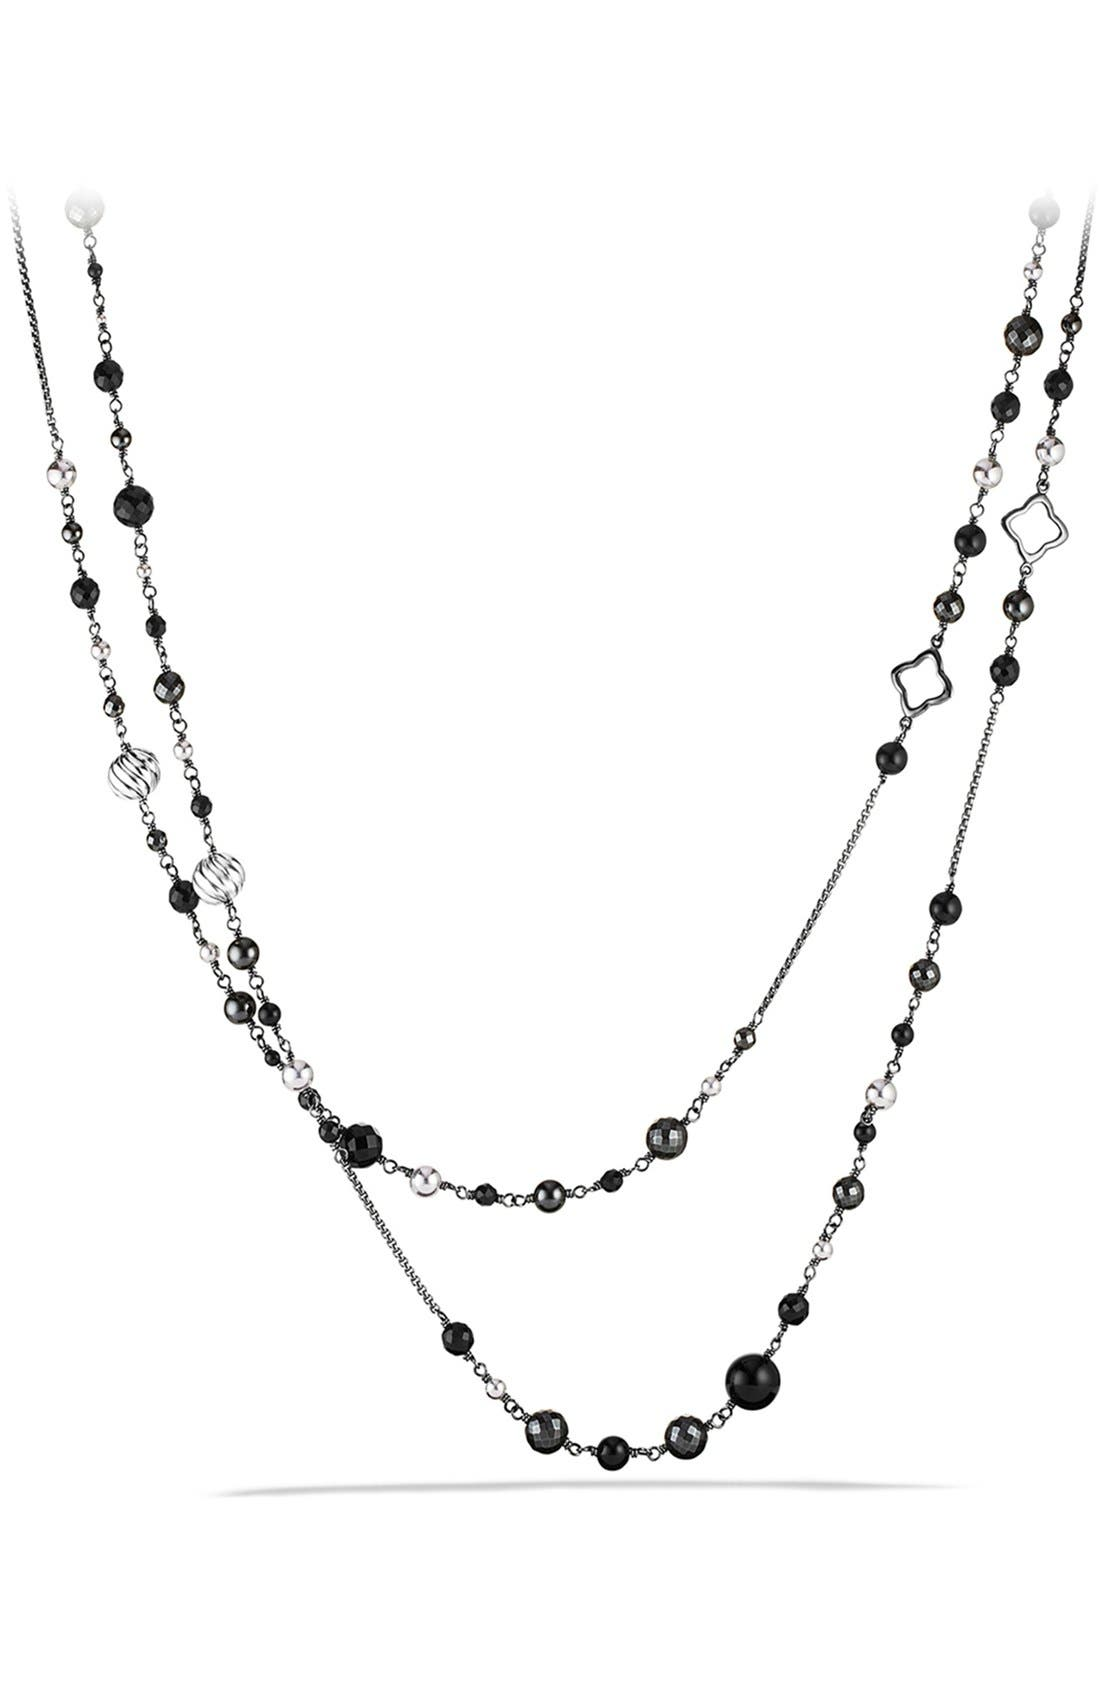 'DY Elements' Chain Necklace with Black Onyx and Hematine,                         Main,                         color, Black Onyx